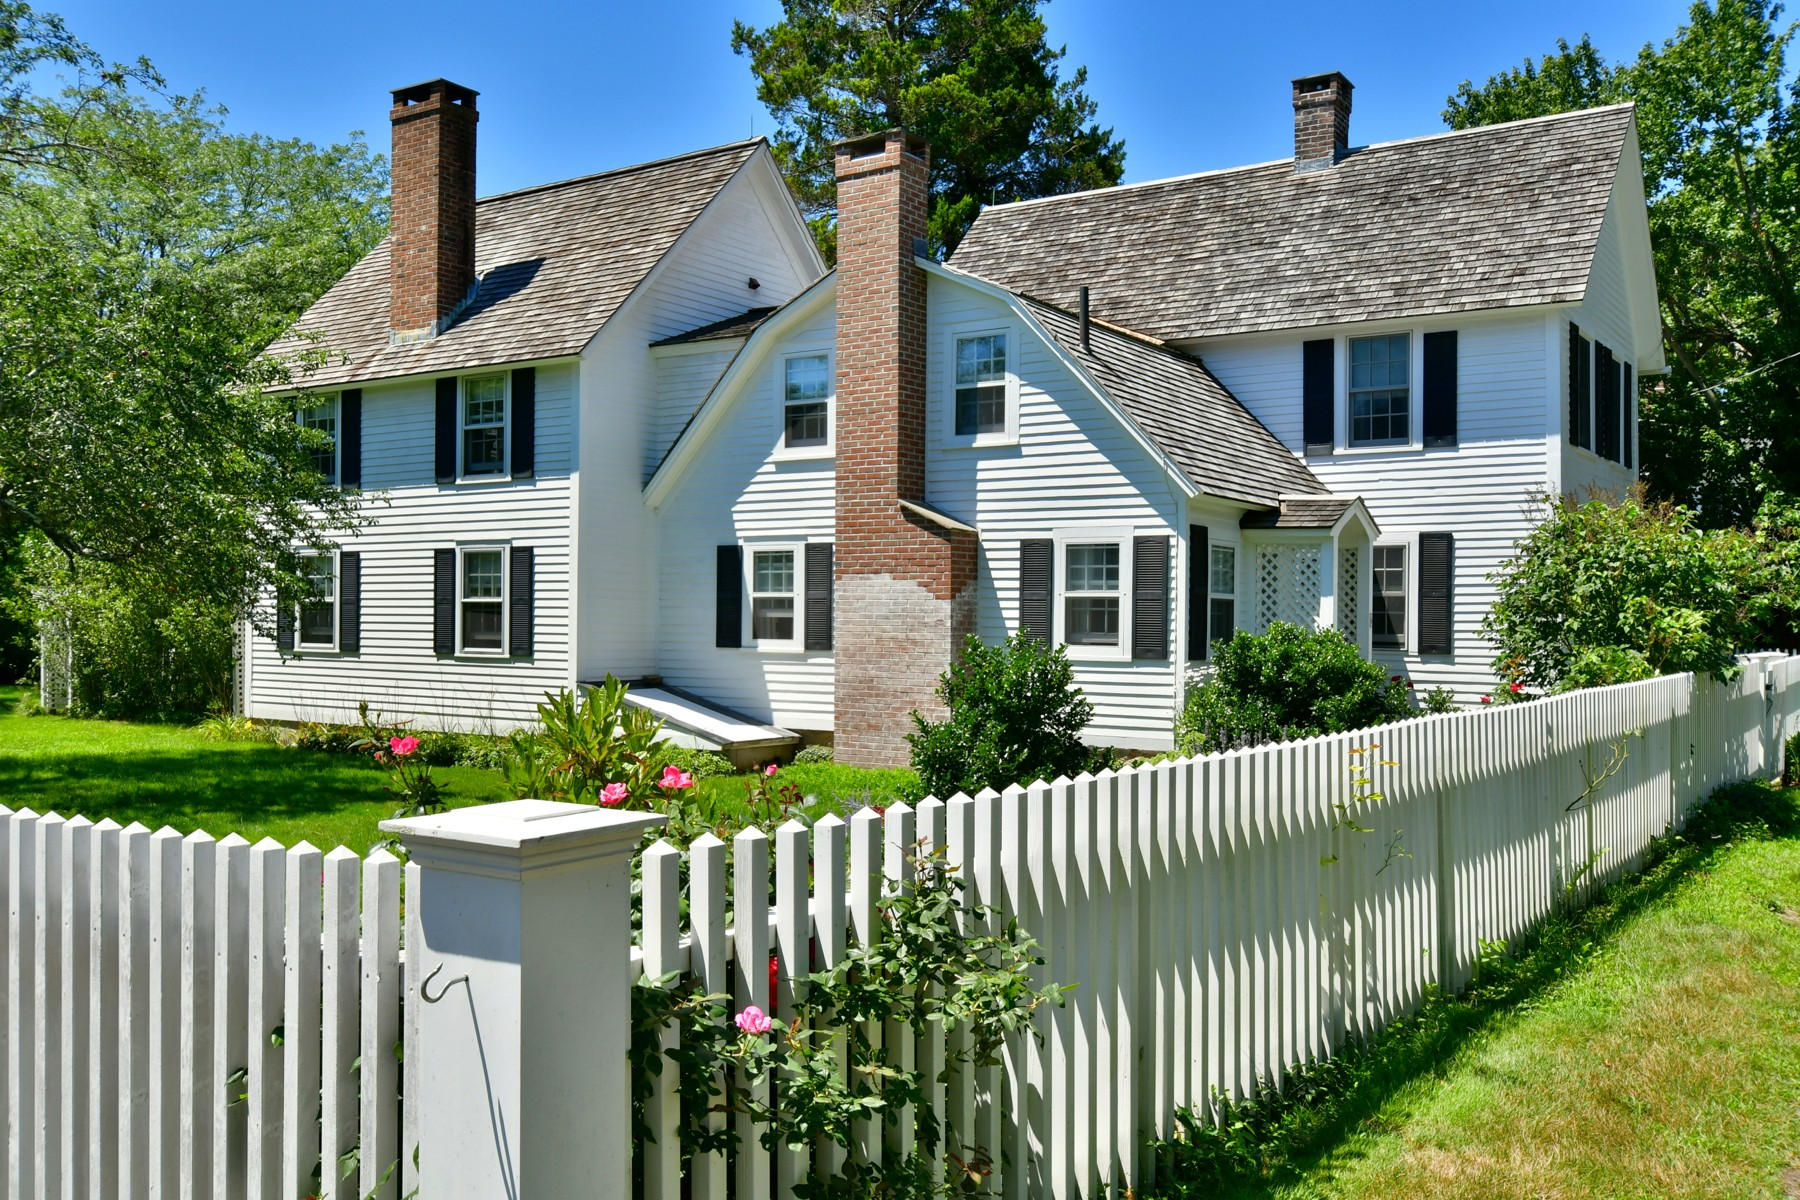 Villa per Vendita alle ore Set In The Heart of Old Lyme Village 6 Ferry Road Old Lyme, Connecticut 06371 Stati Uniti